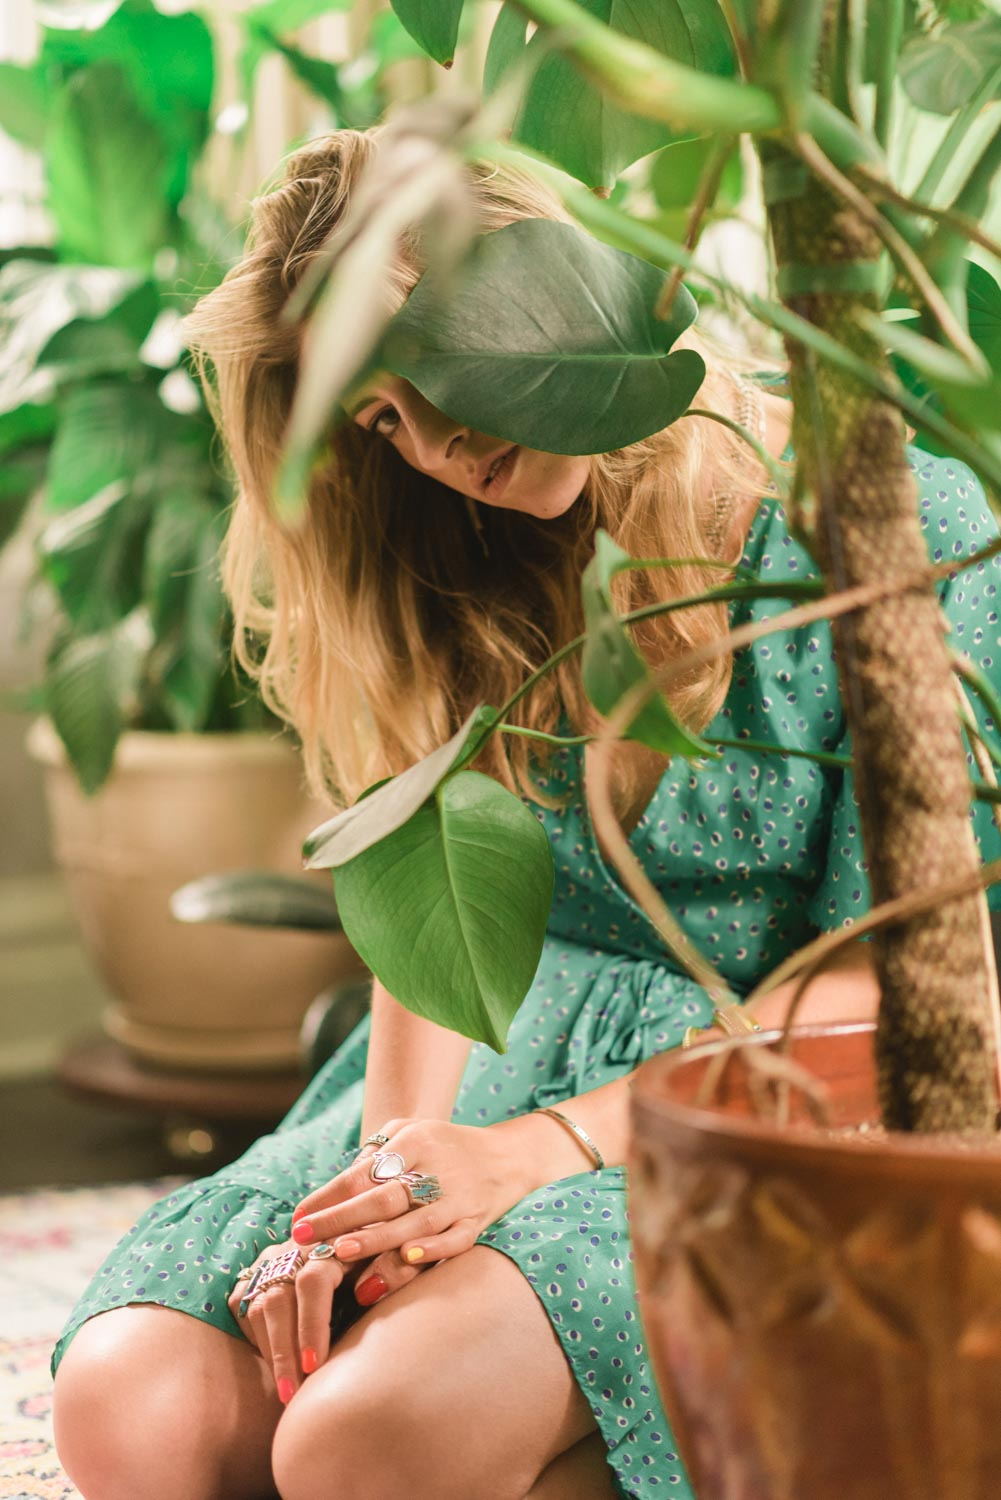 another portrait of Amanda with her plants slightly obscuring her face. she is wearing a green dress while kneeling on the floor.